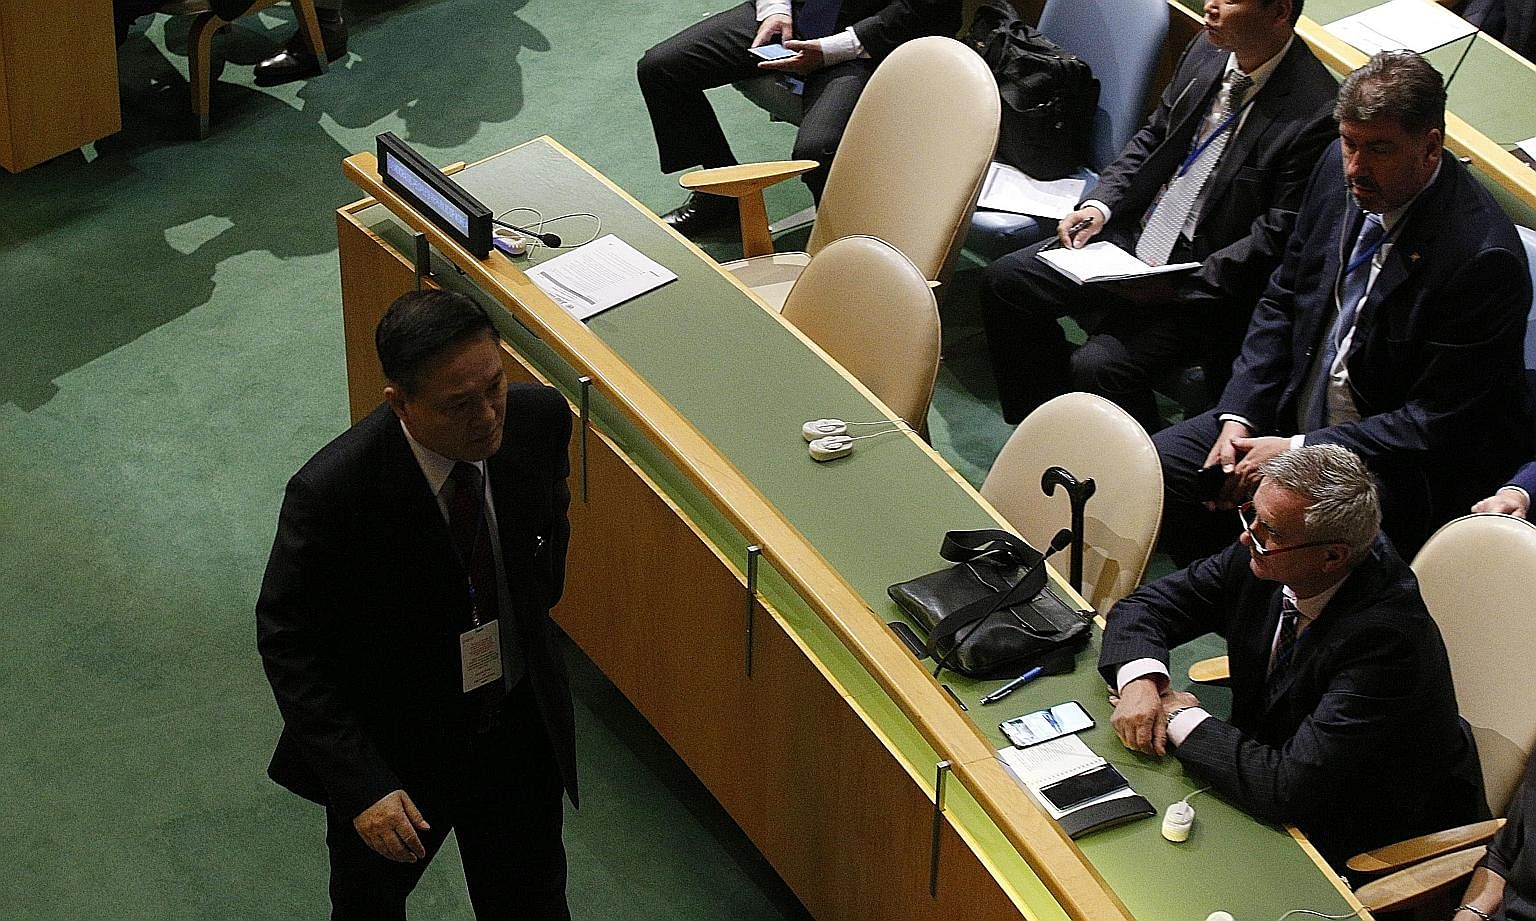 North Korea's Ambassador to the UN, Mr Ja Song Nam, leaving the chamber ahead of US President Donald Trump's address to the General Assembly on Tuesday.